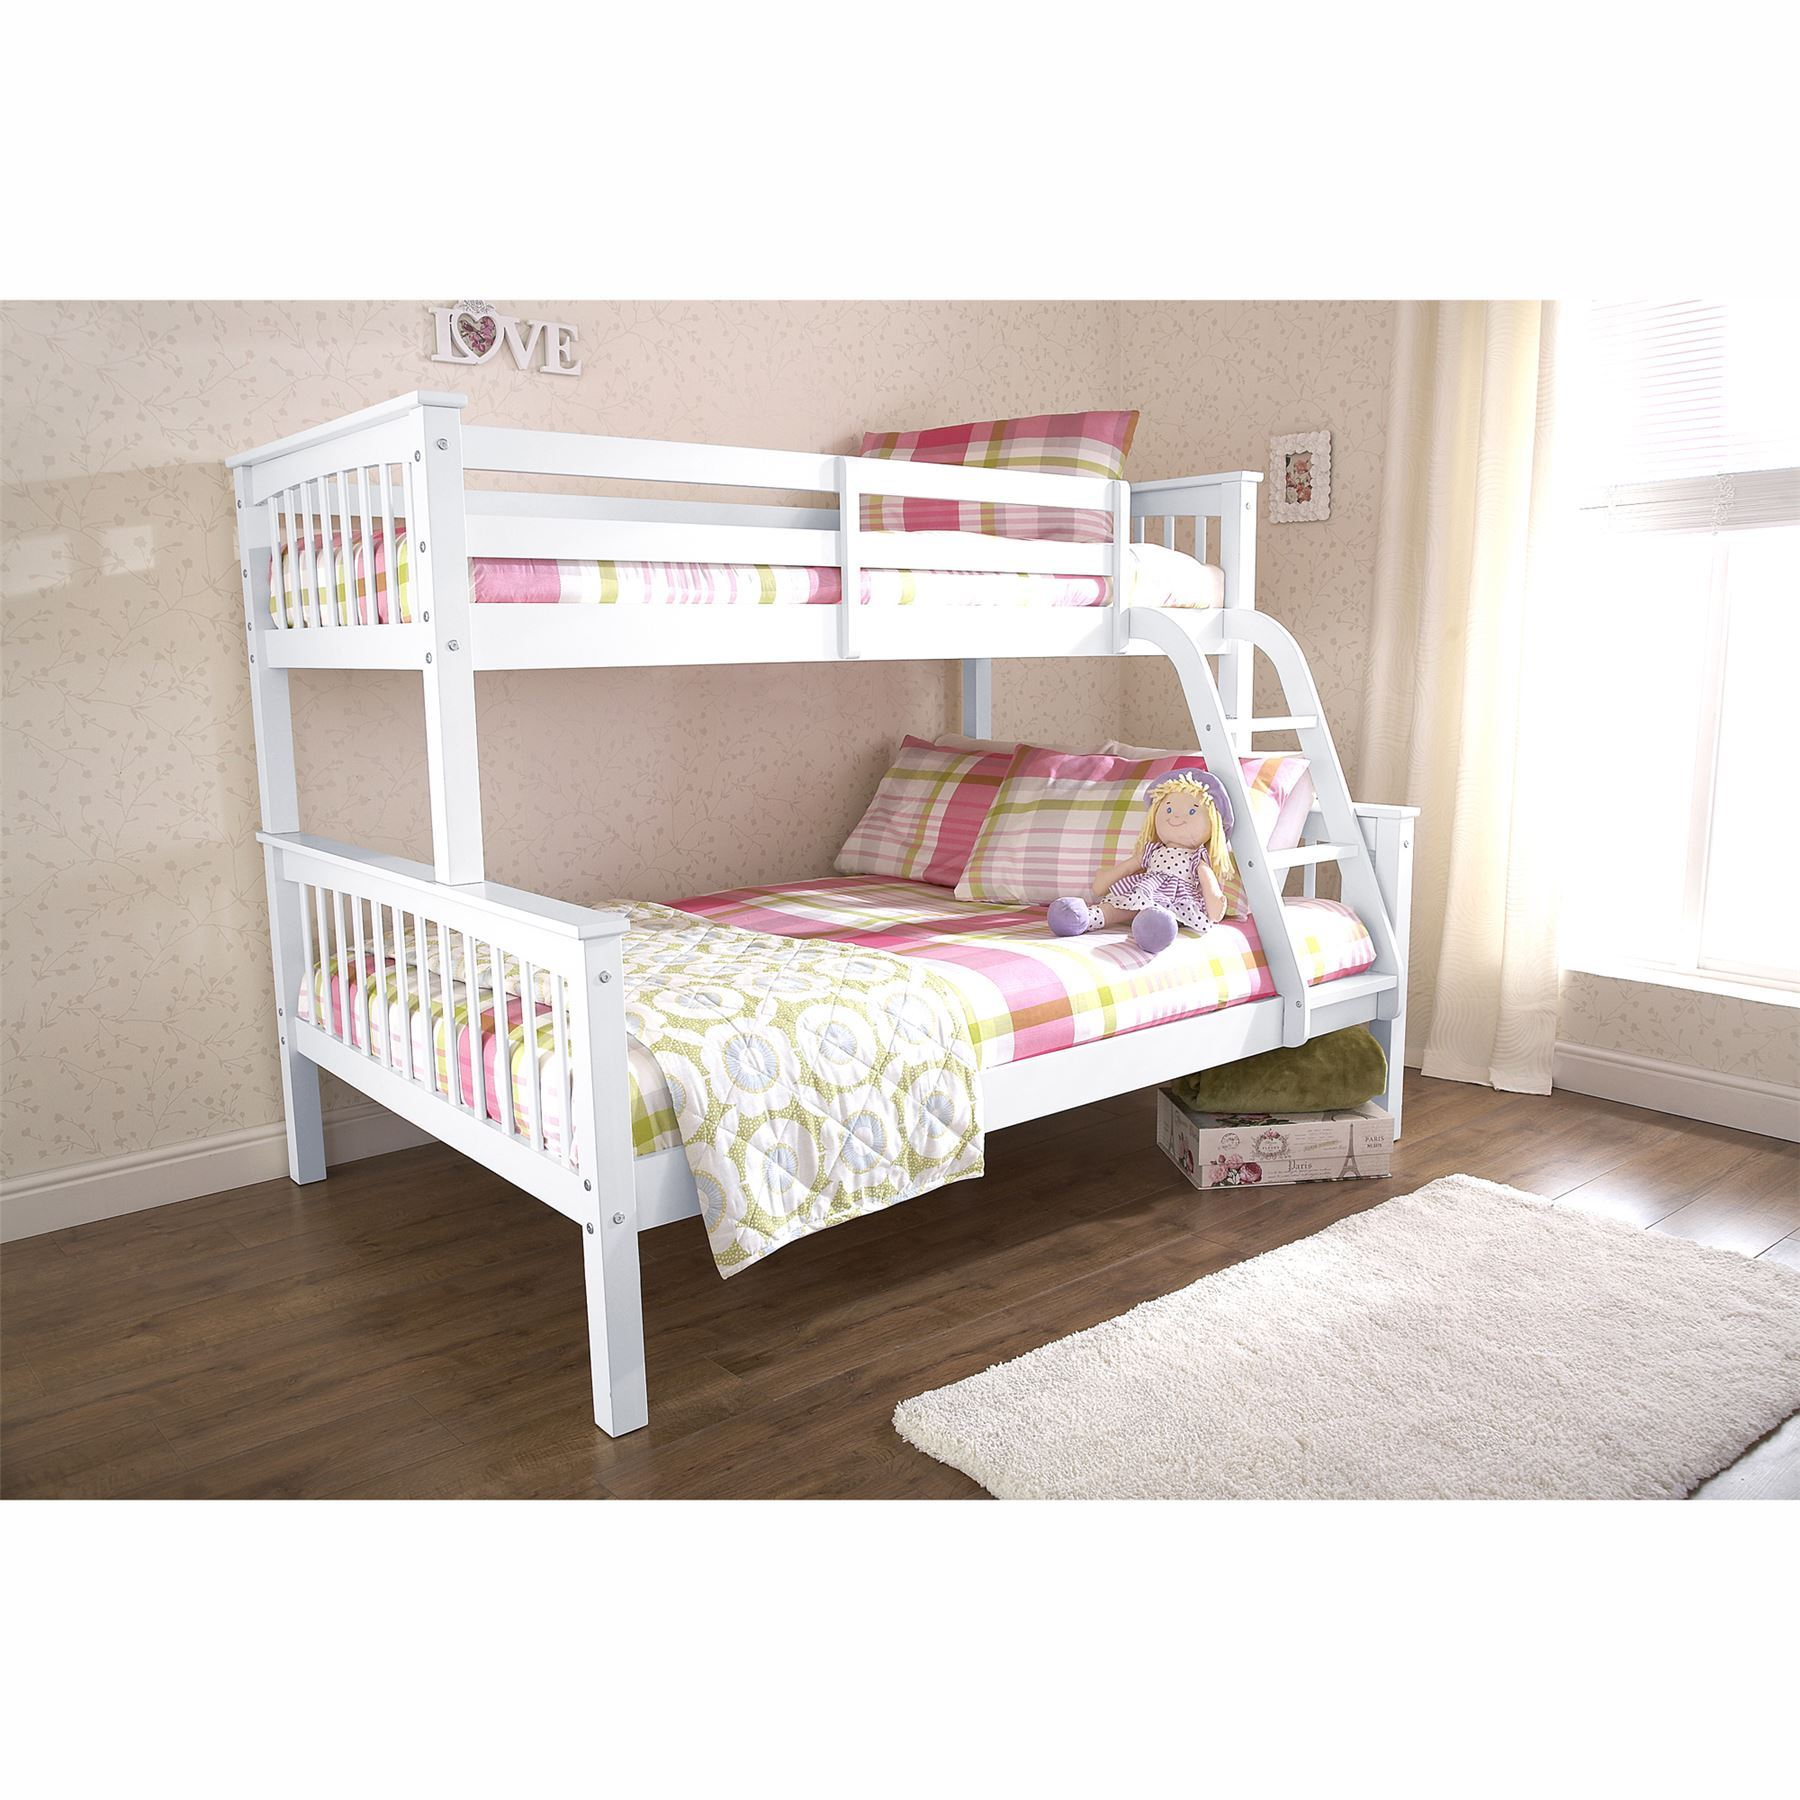 Single Beds For Kids Novaro Trio White Bunk Bed Frames 3ft Single 4ft6 Double